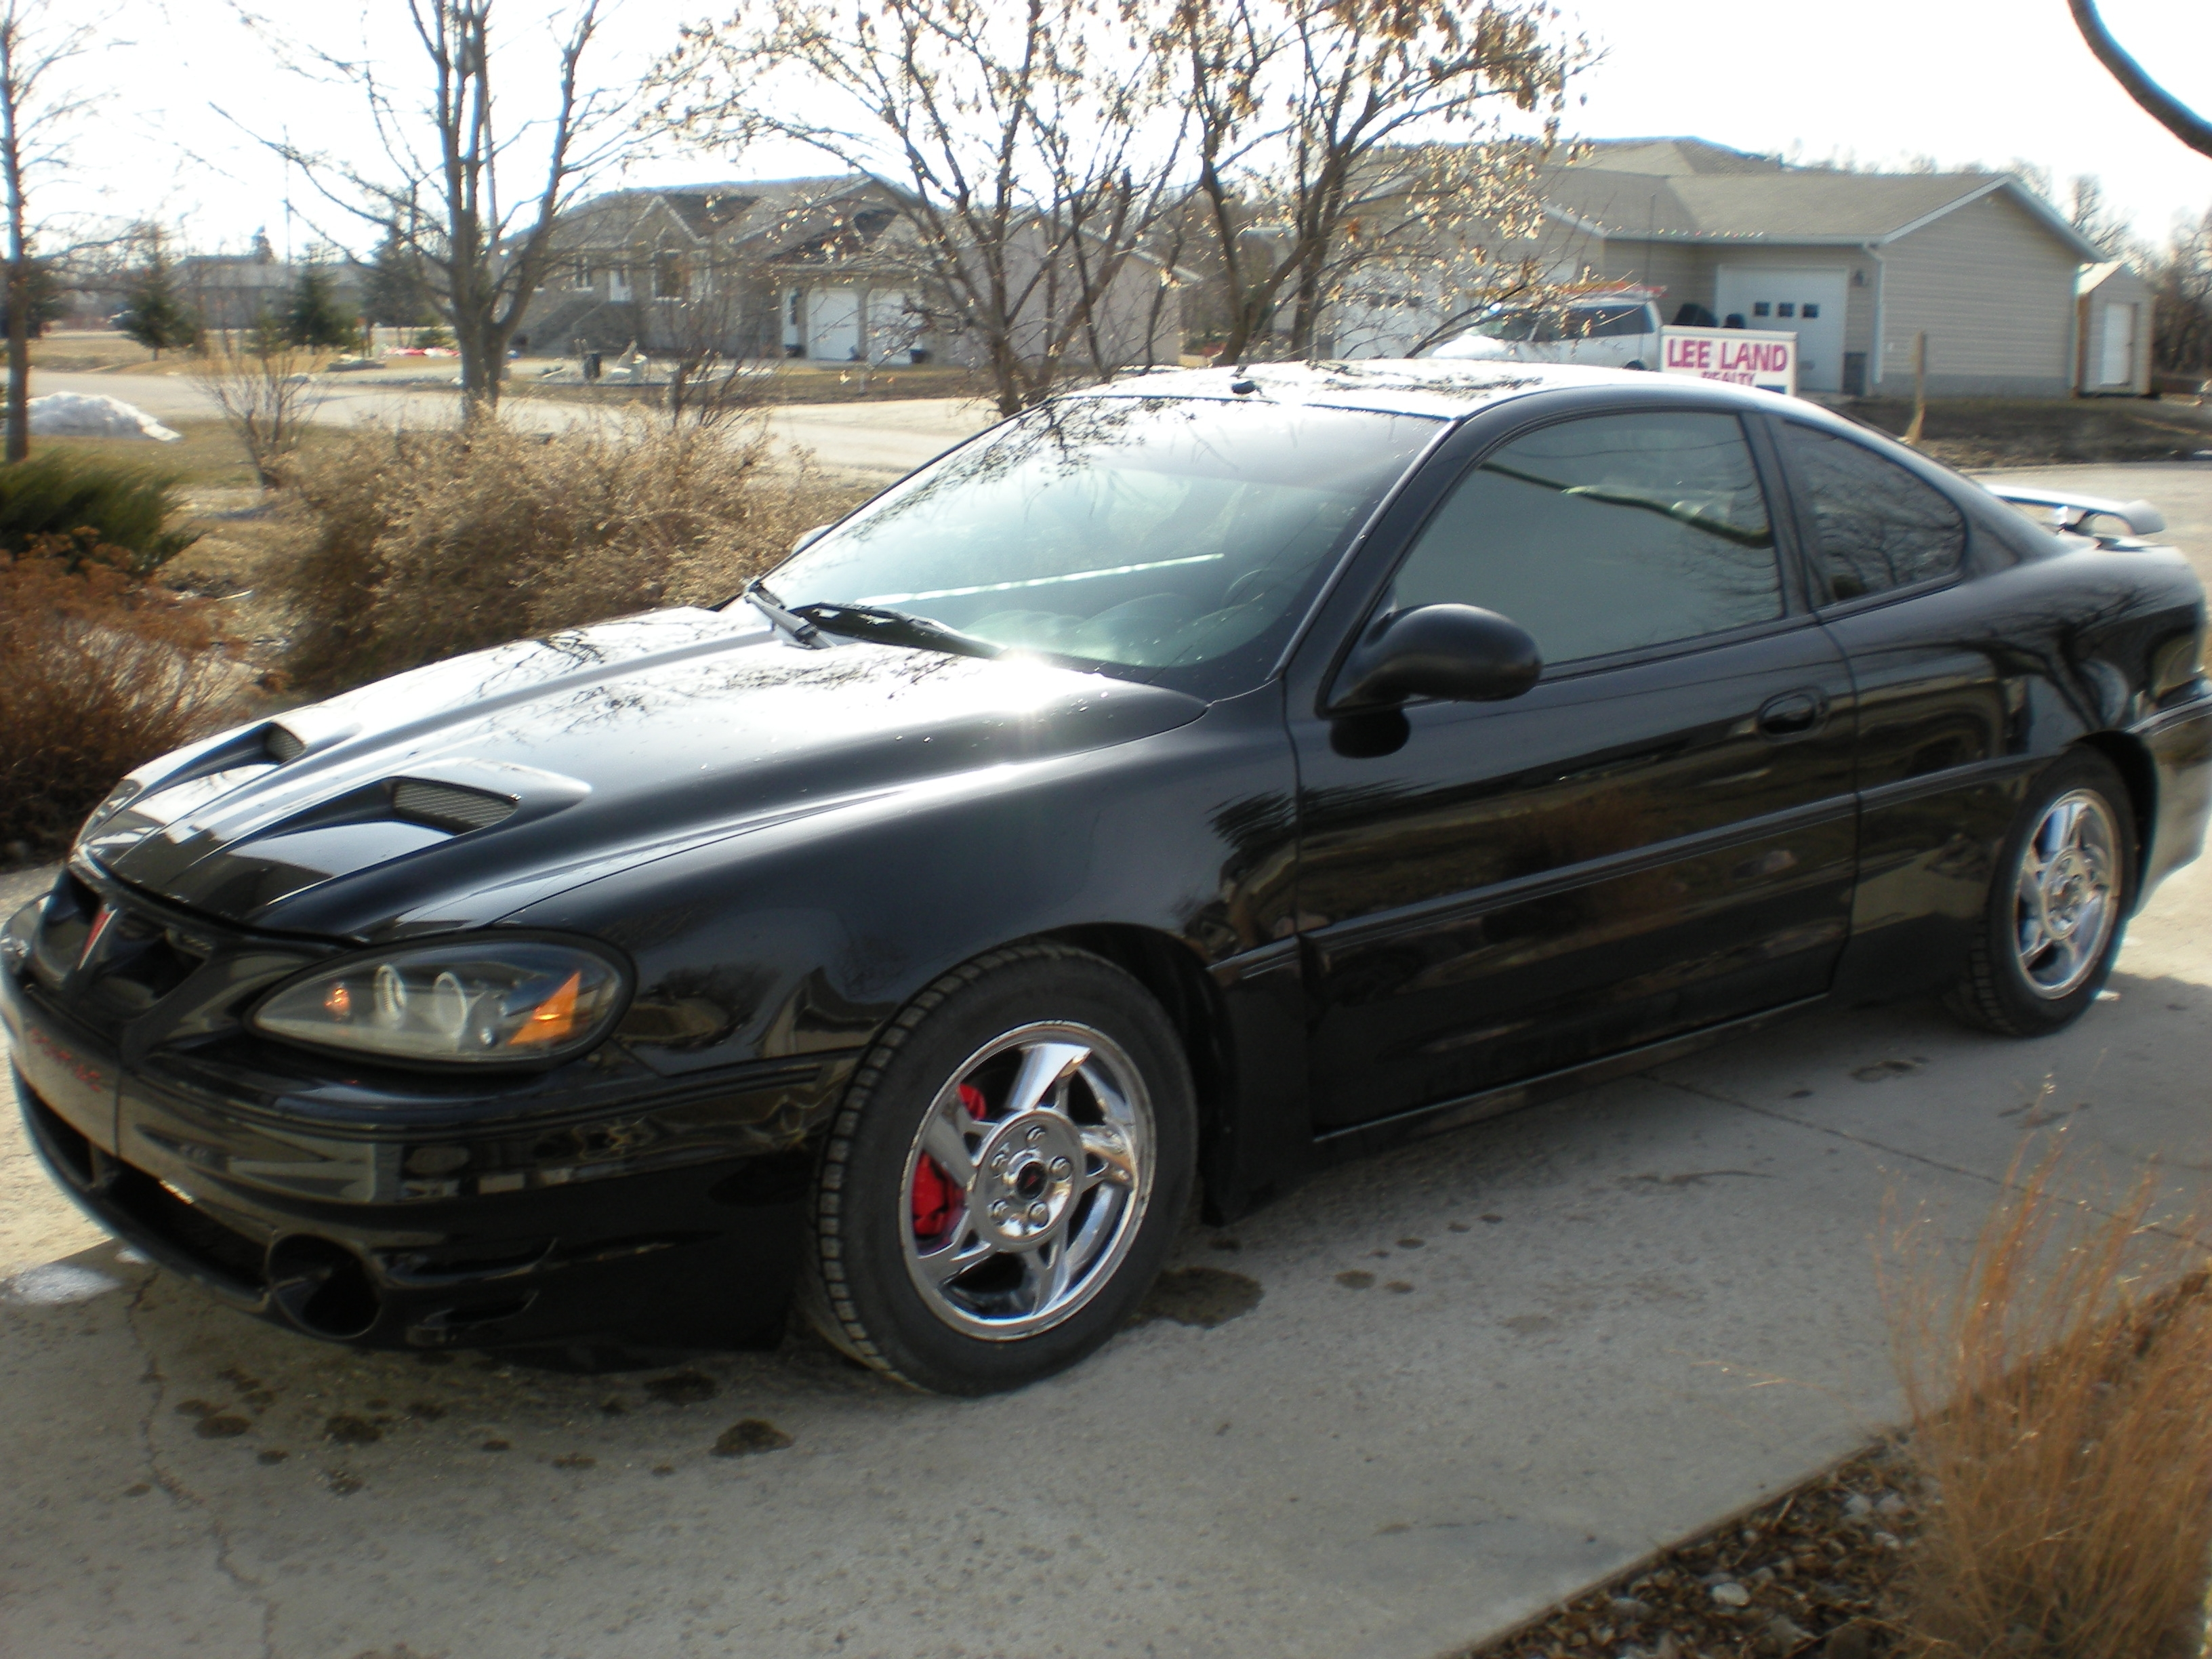 03GAGT1SCT 2003 Pontiac Grand Am 14122323